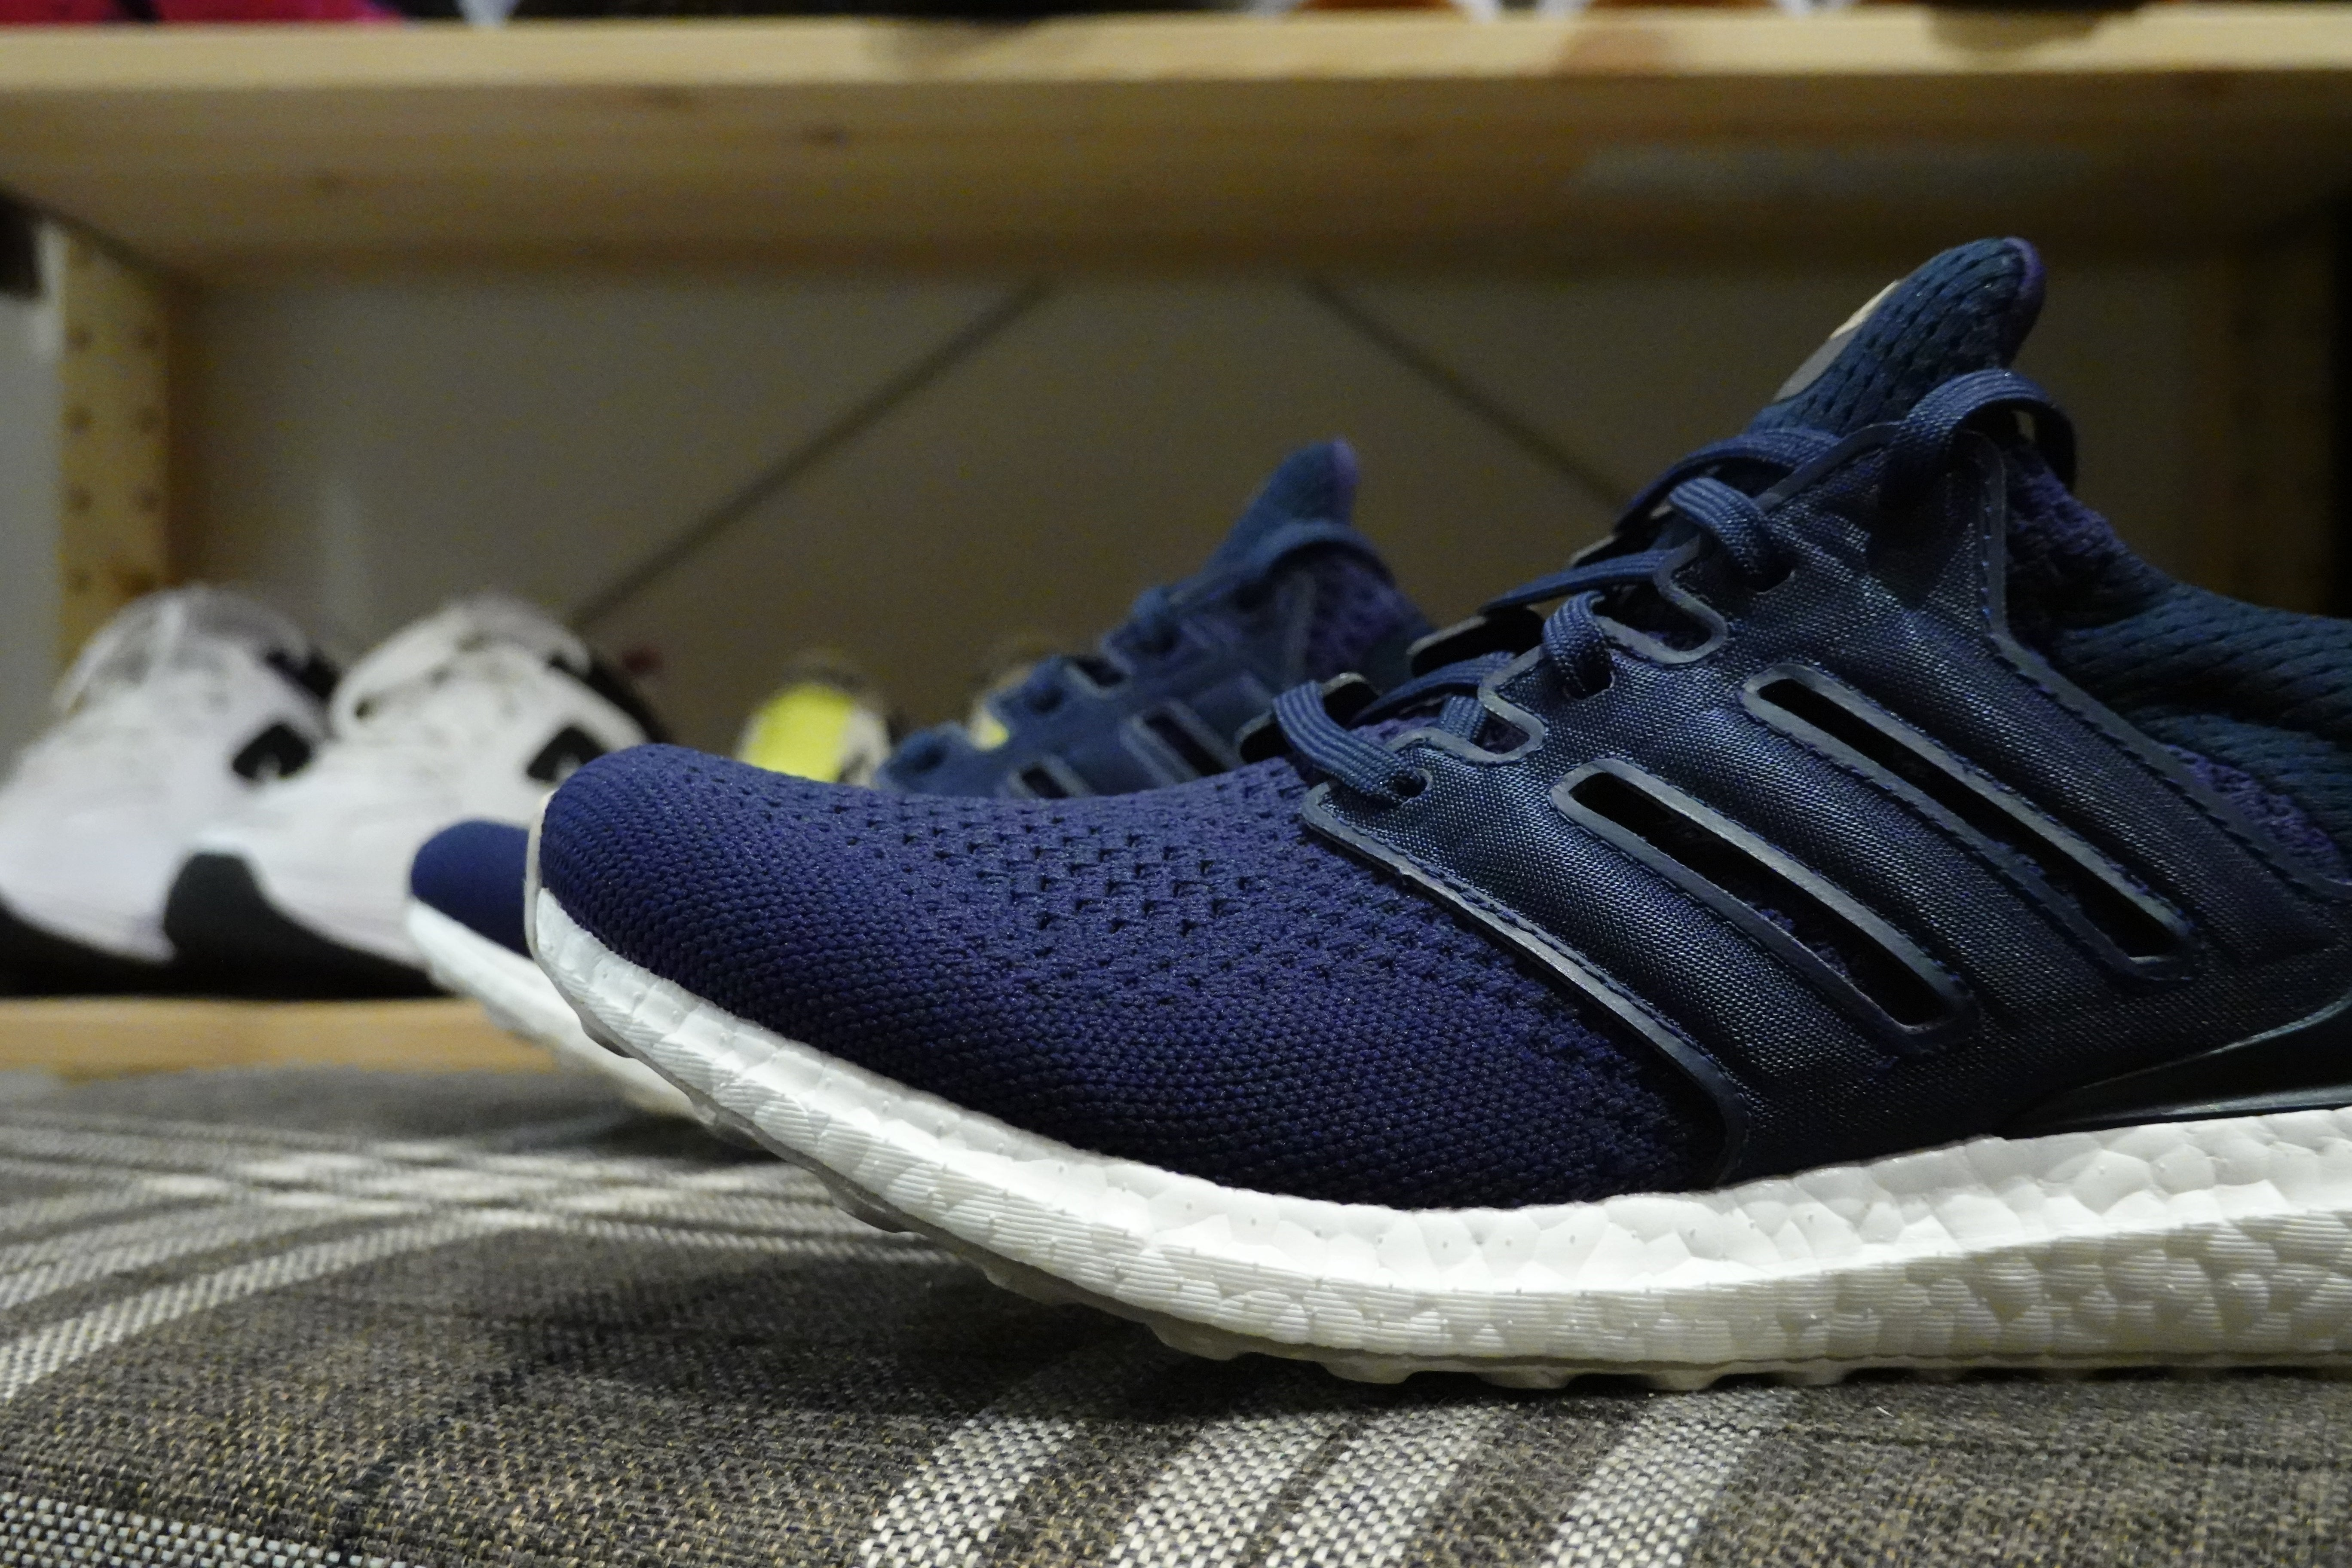 adidas Ultra Boost 1.0 for ZOZOTOWN - CNVY/CNVY/LBRN #FW9885-Preorder Item-Navy Selected Shop